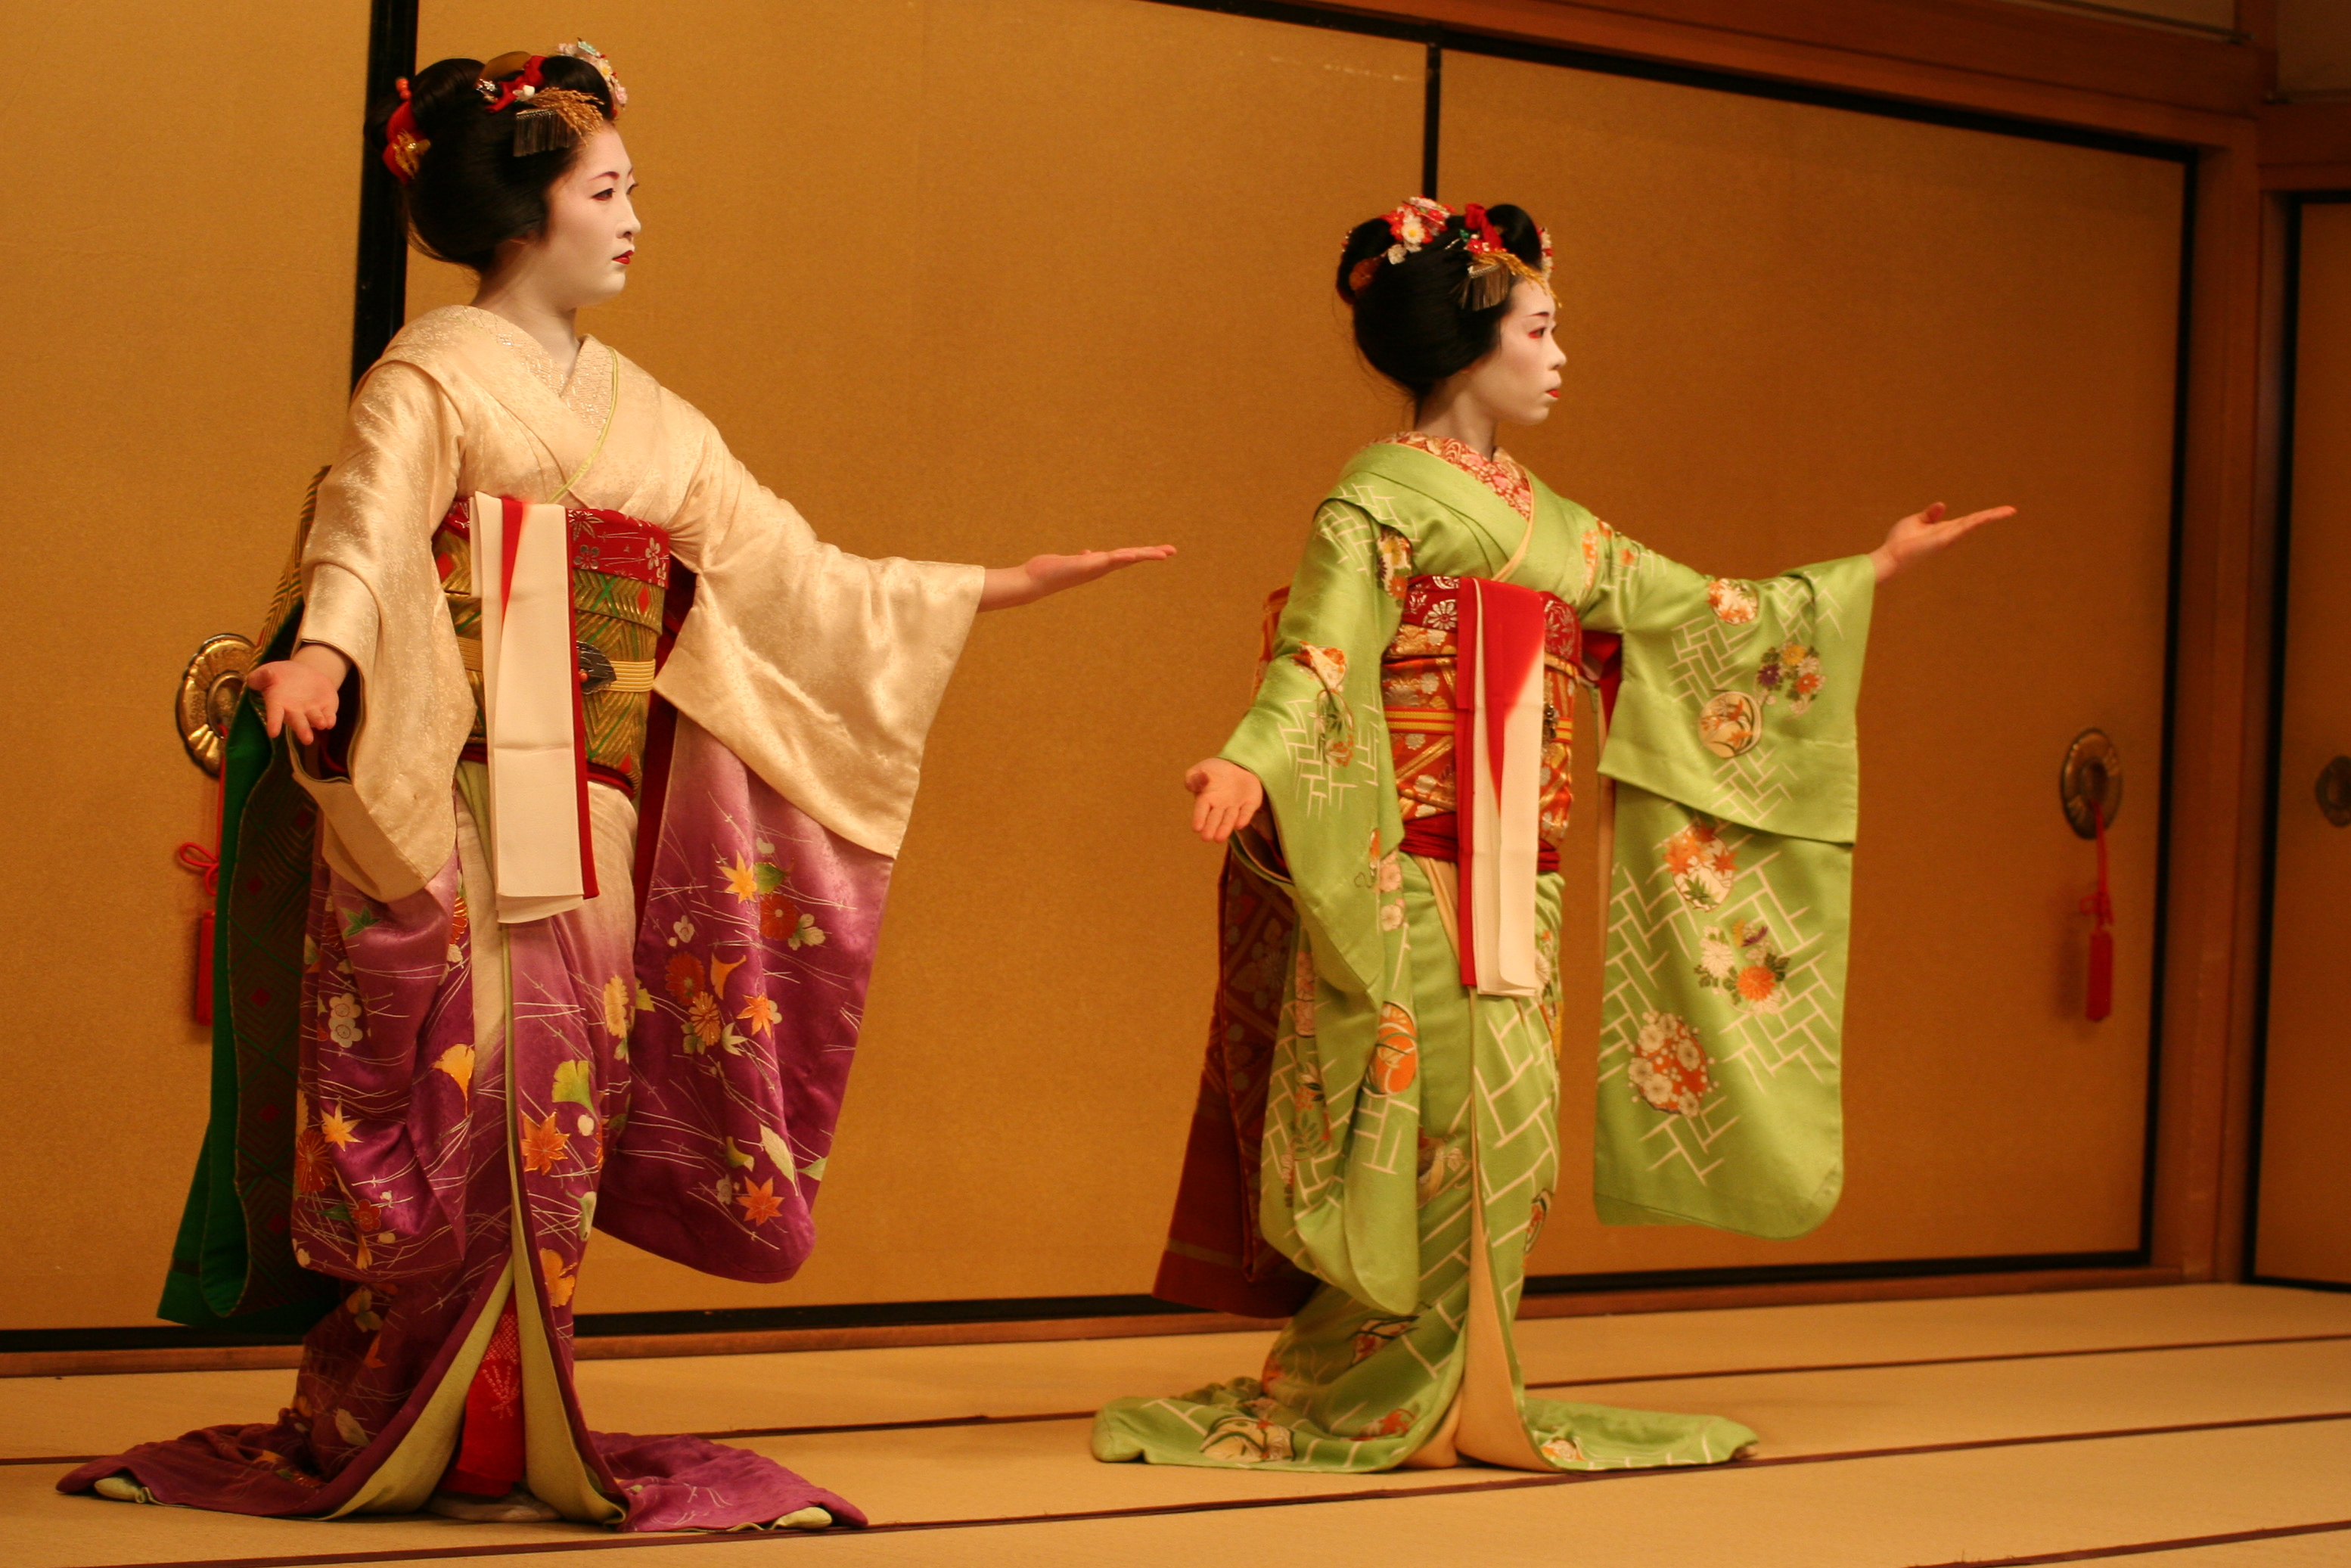 Geisha Traditional Japanese Hostesses  707.25 Kb